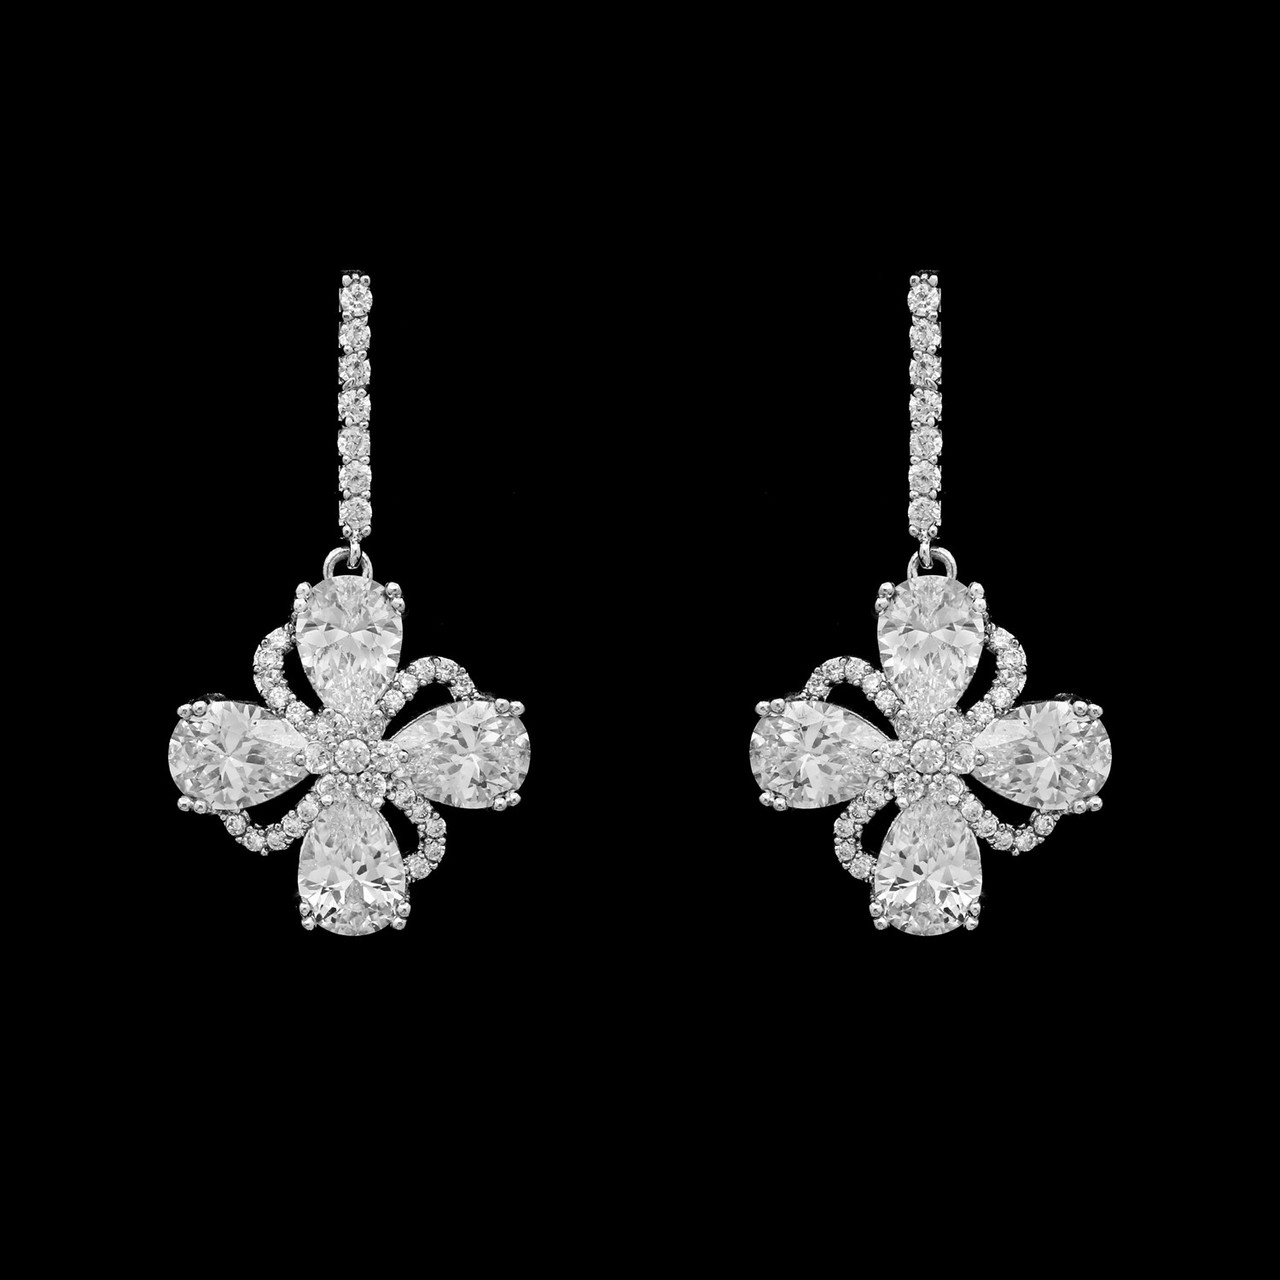 Formal Cubic Zirconia Earrings for Bridesmaids and Brides - #1026